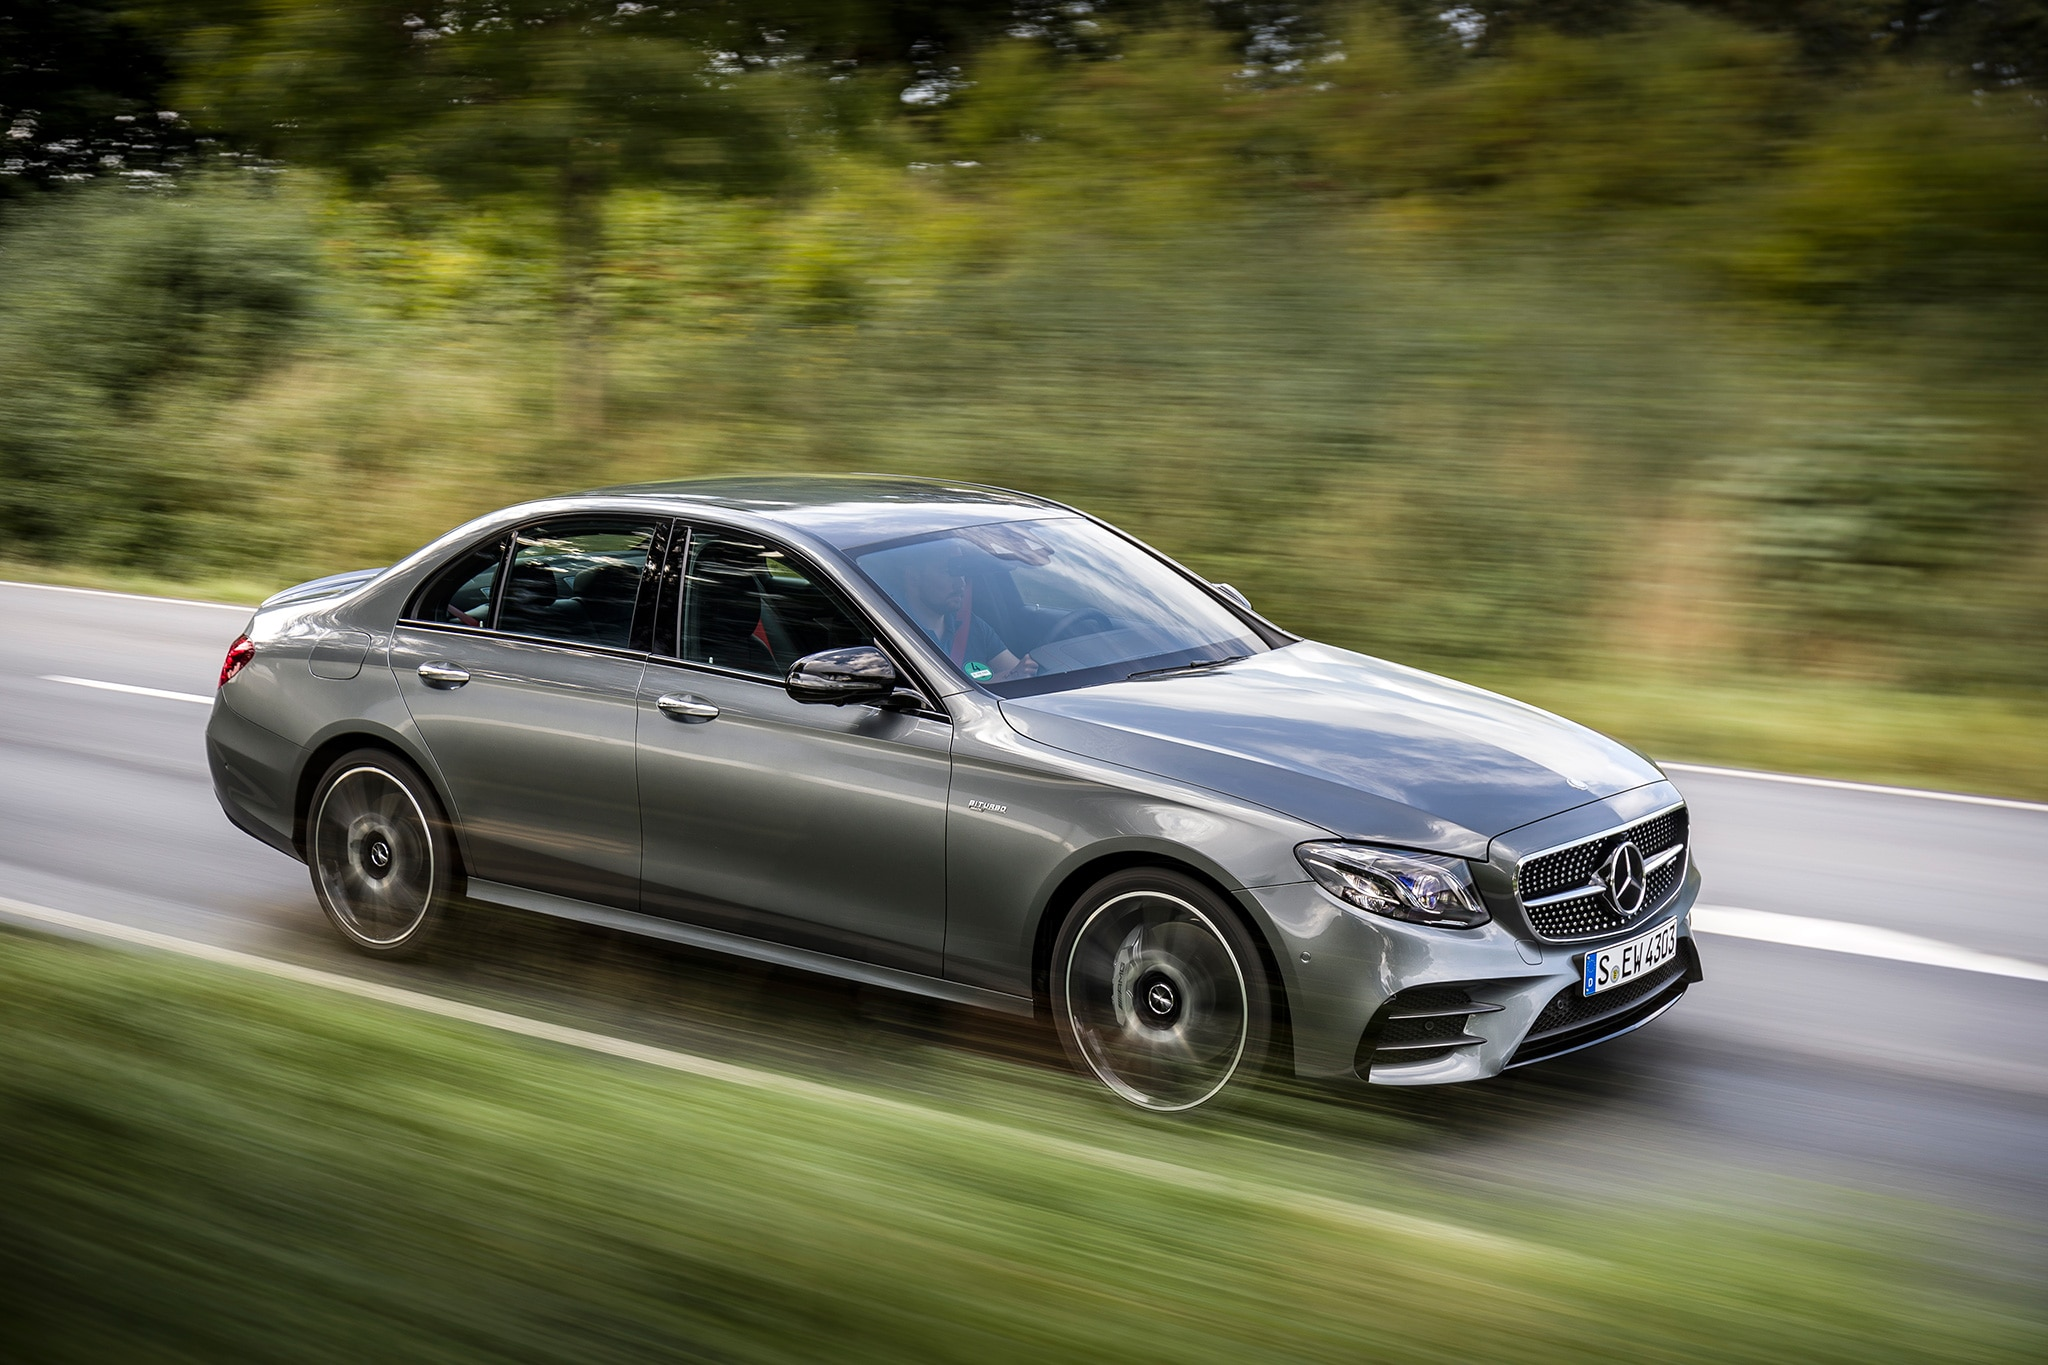 2017 mercedes amg e43 sedan first drive and review automobile magazine. Black Bedroom Furniture Sets. Home Design Ideas